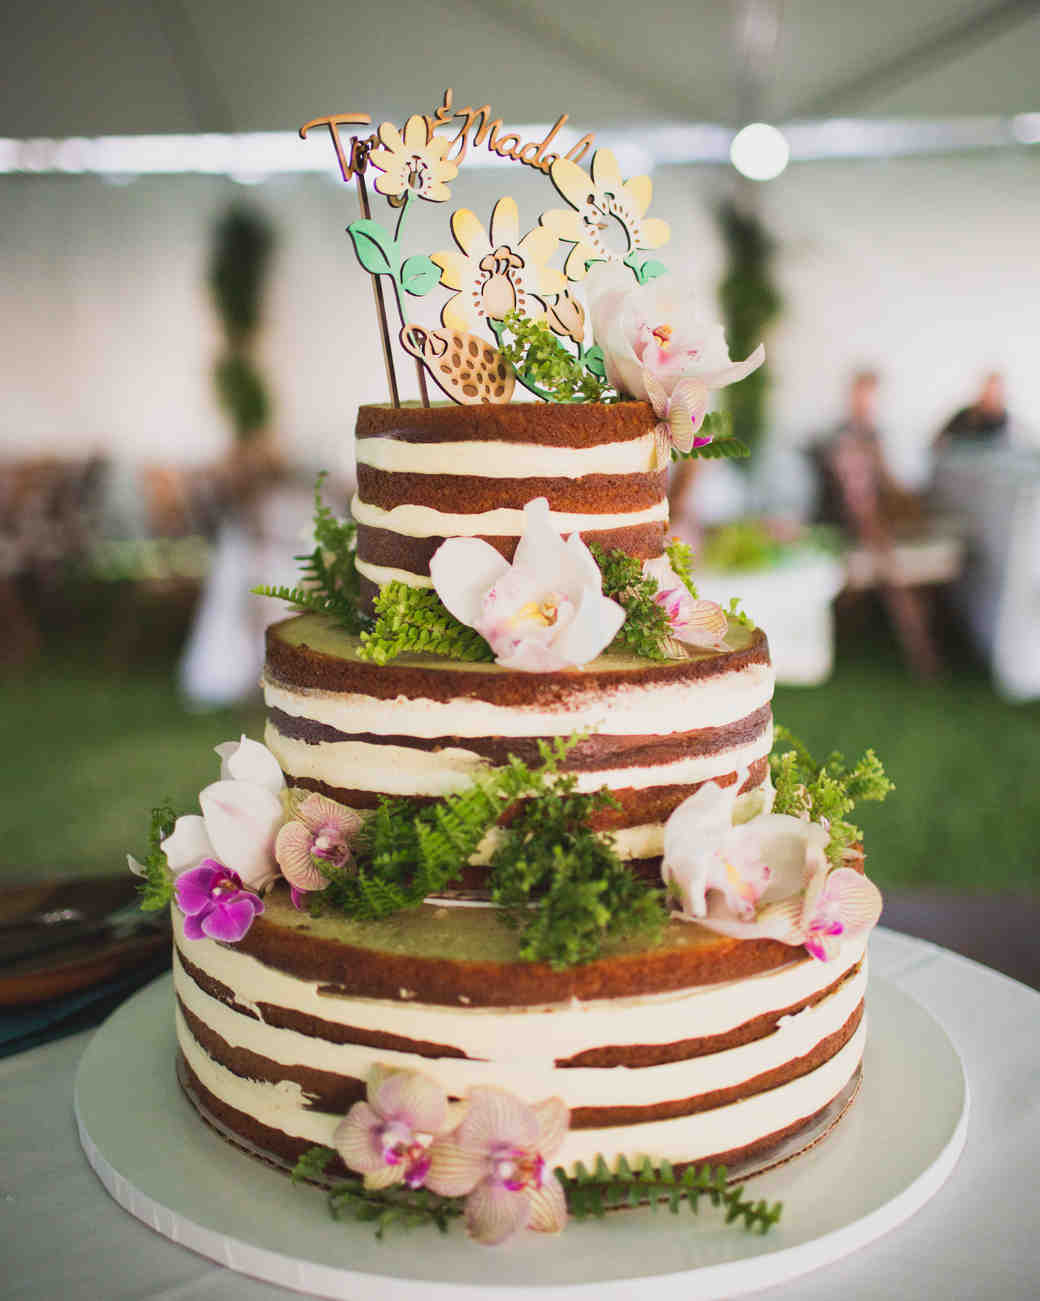 Tropical Naked Cake with Flowers and Topper